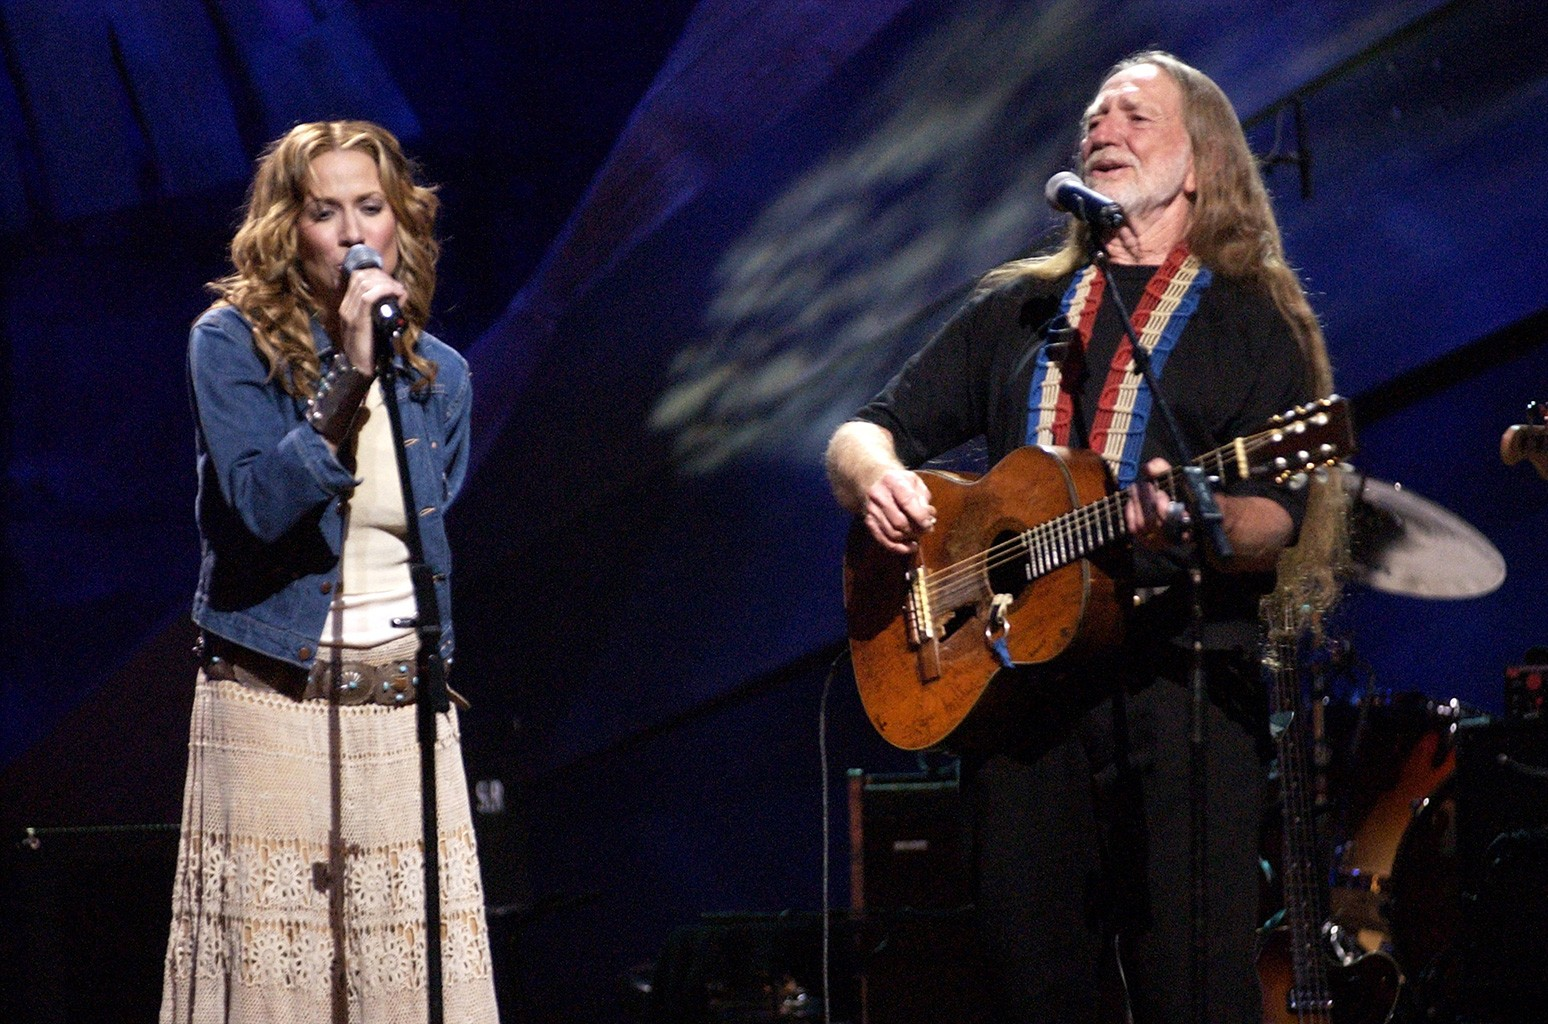 Sheryl Crow and Willie Nelson onstage at Beacon Theatre in New York City.